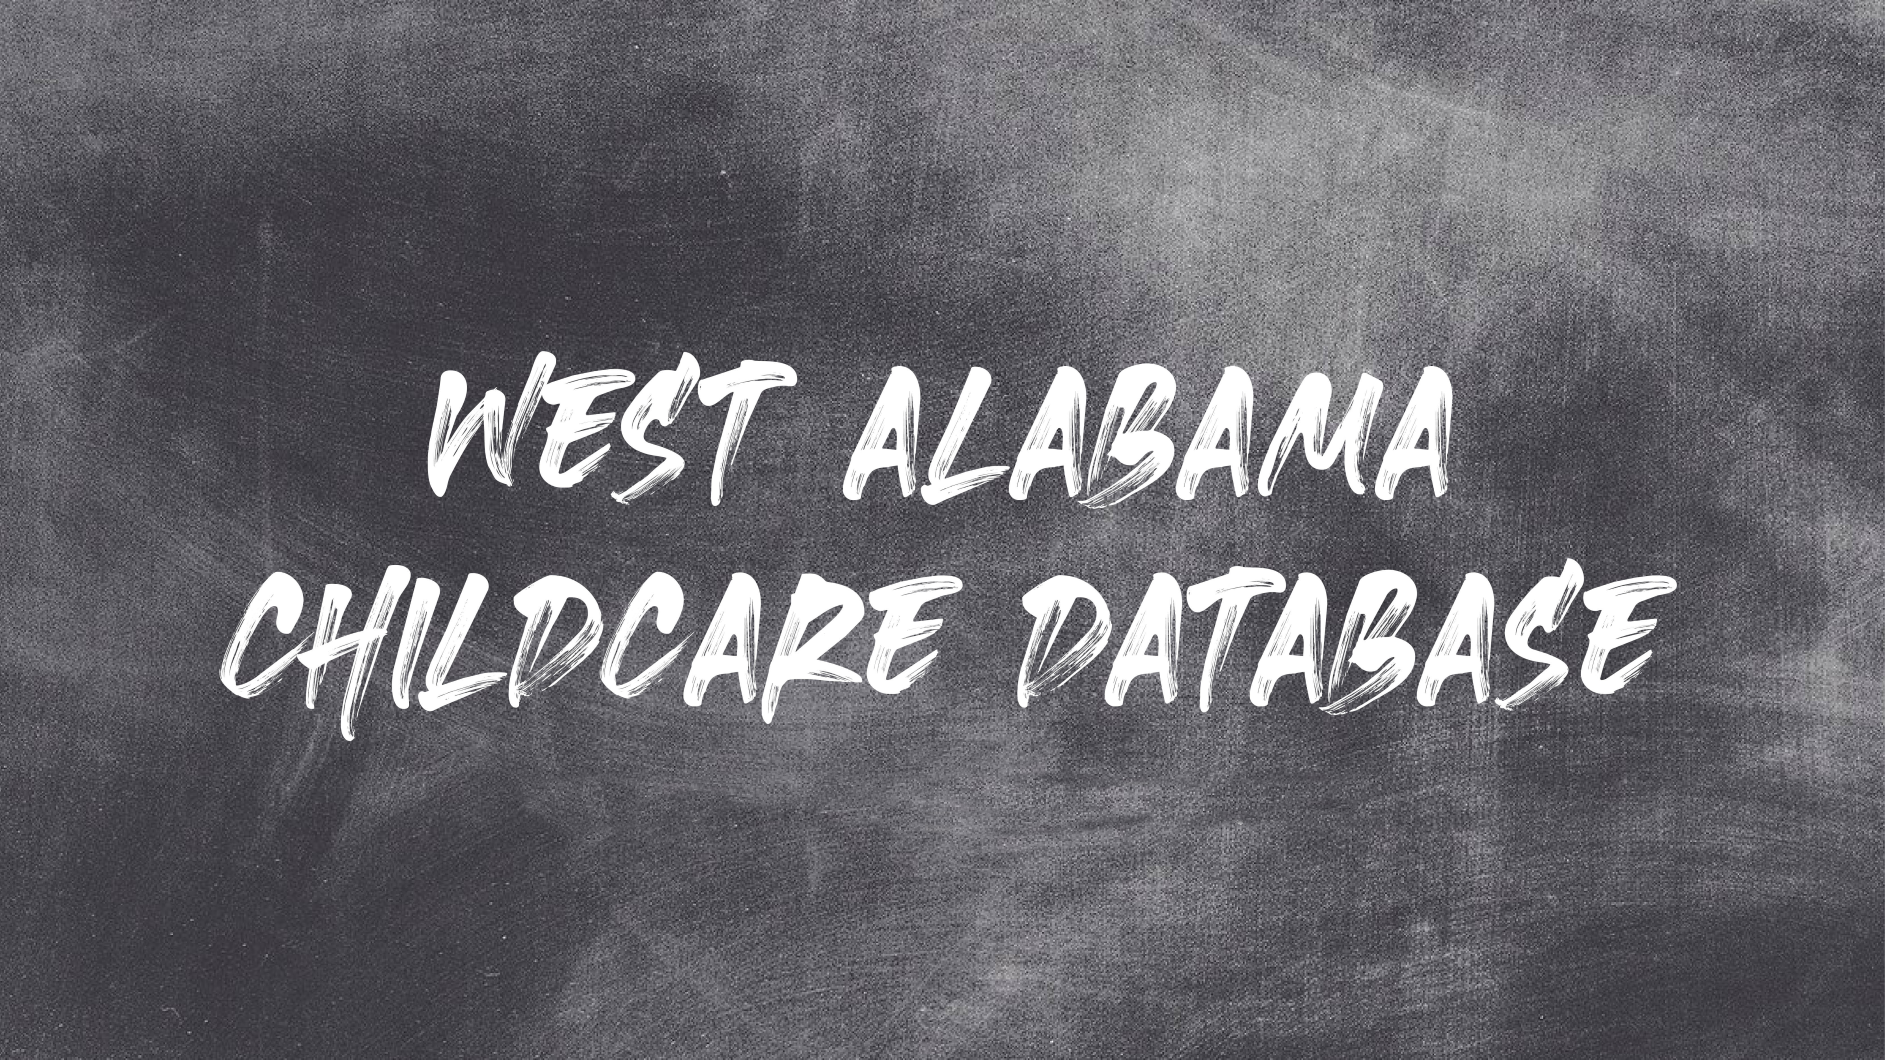 West Alabama Childcare Database